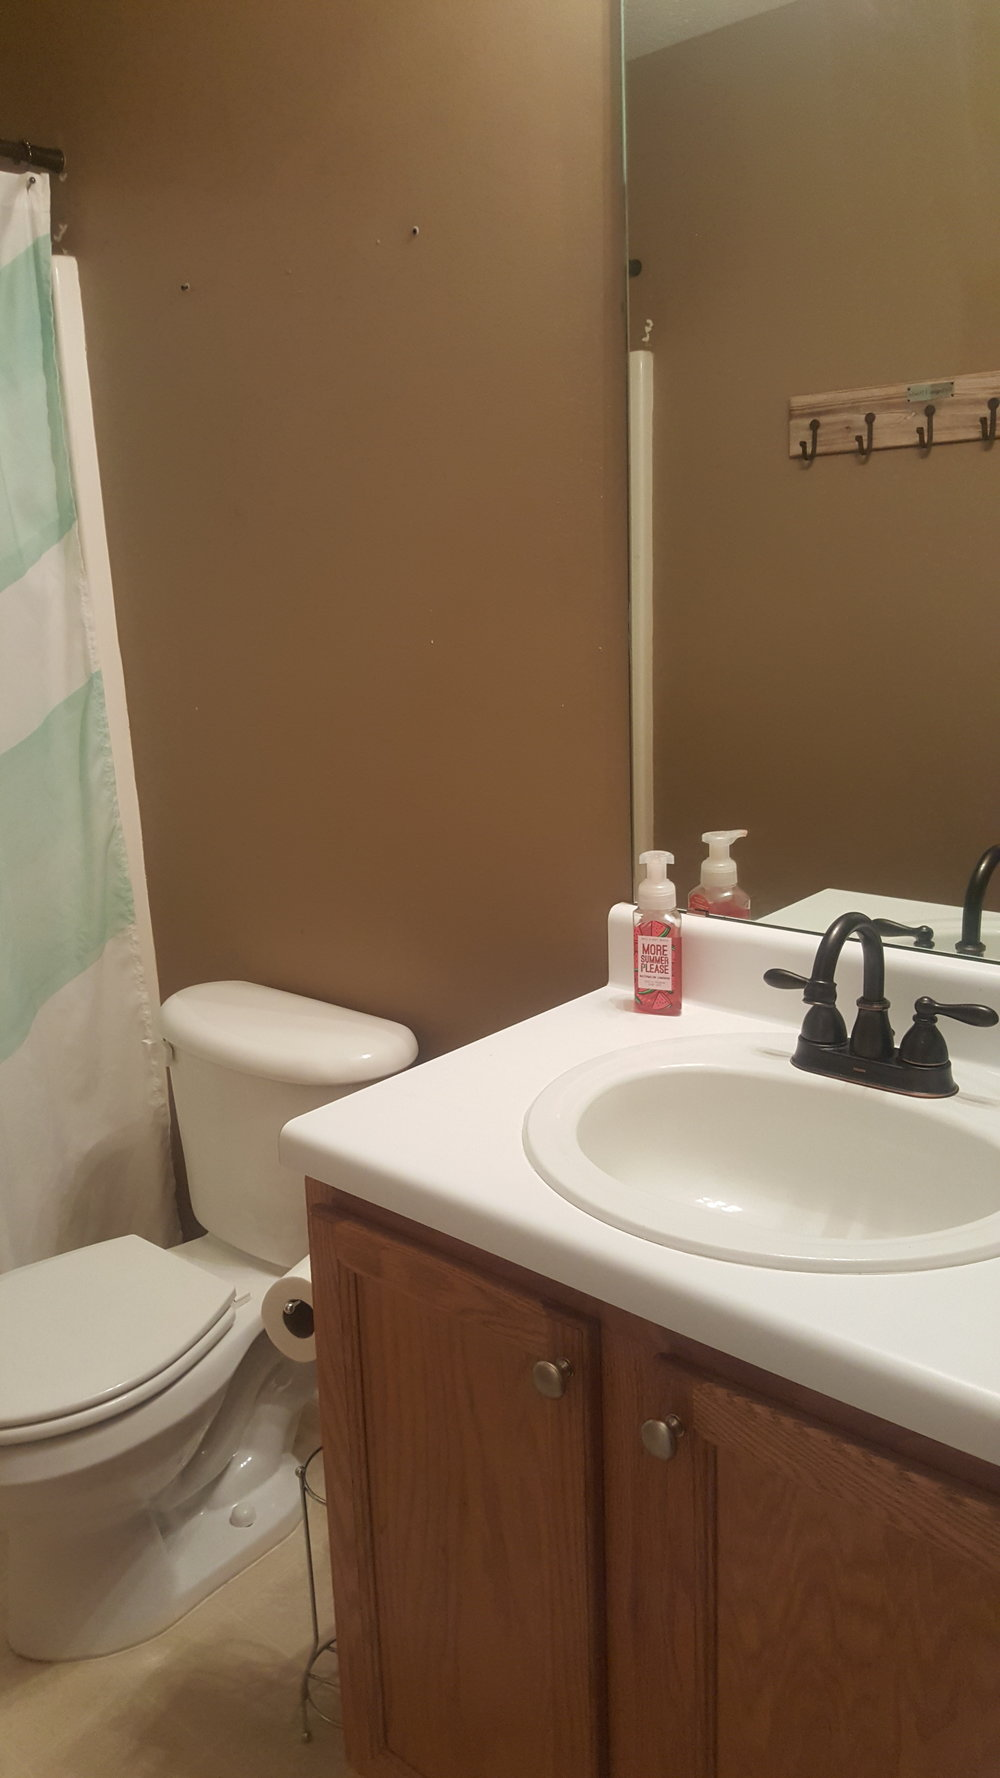 Awful mirror and free standing toilet paper holder.